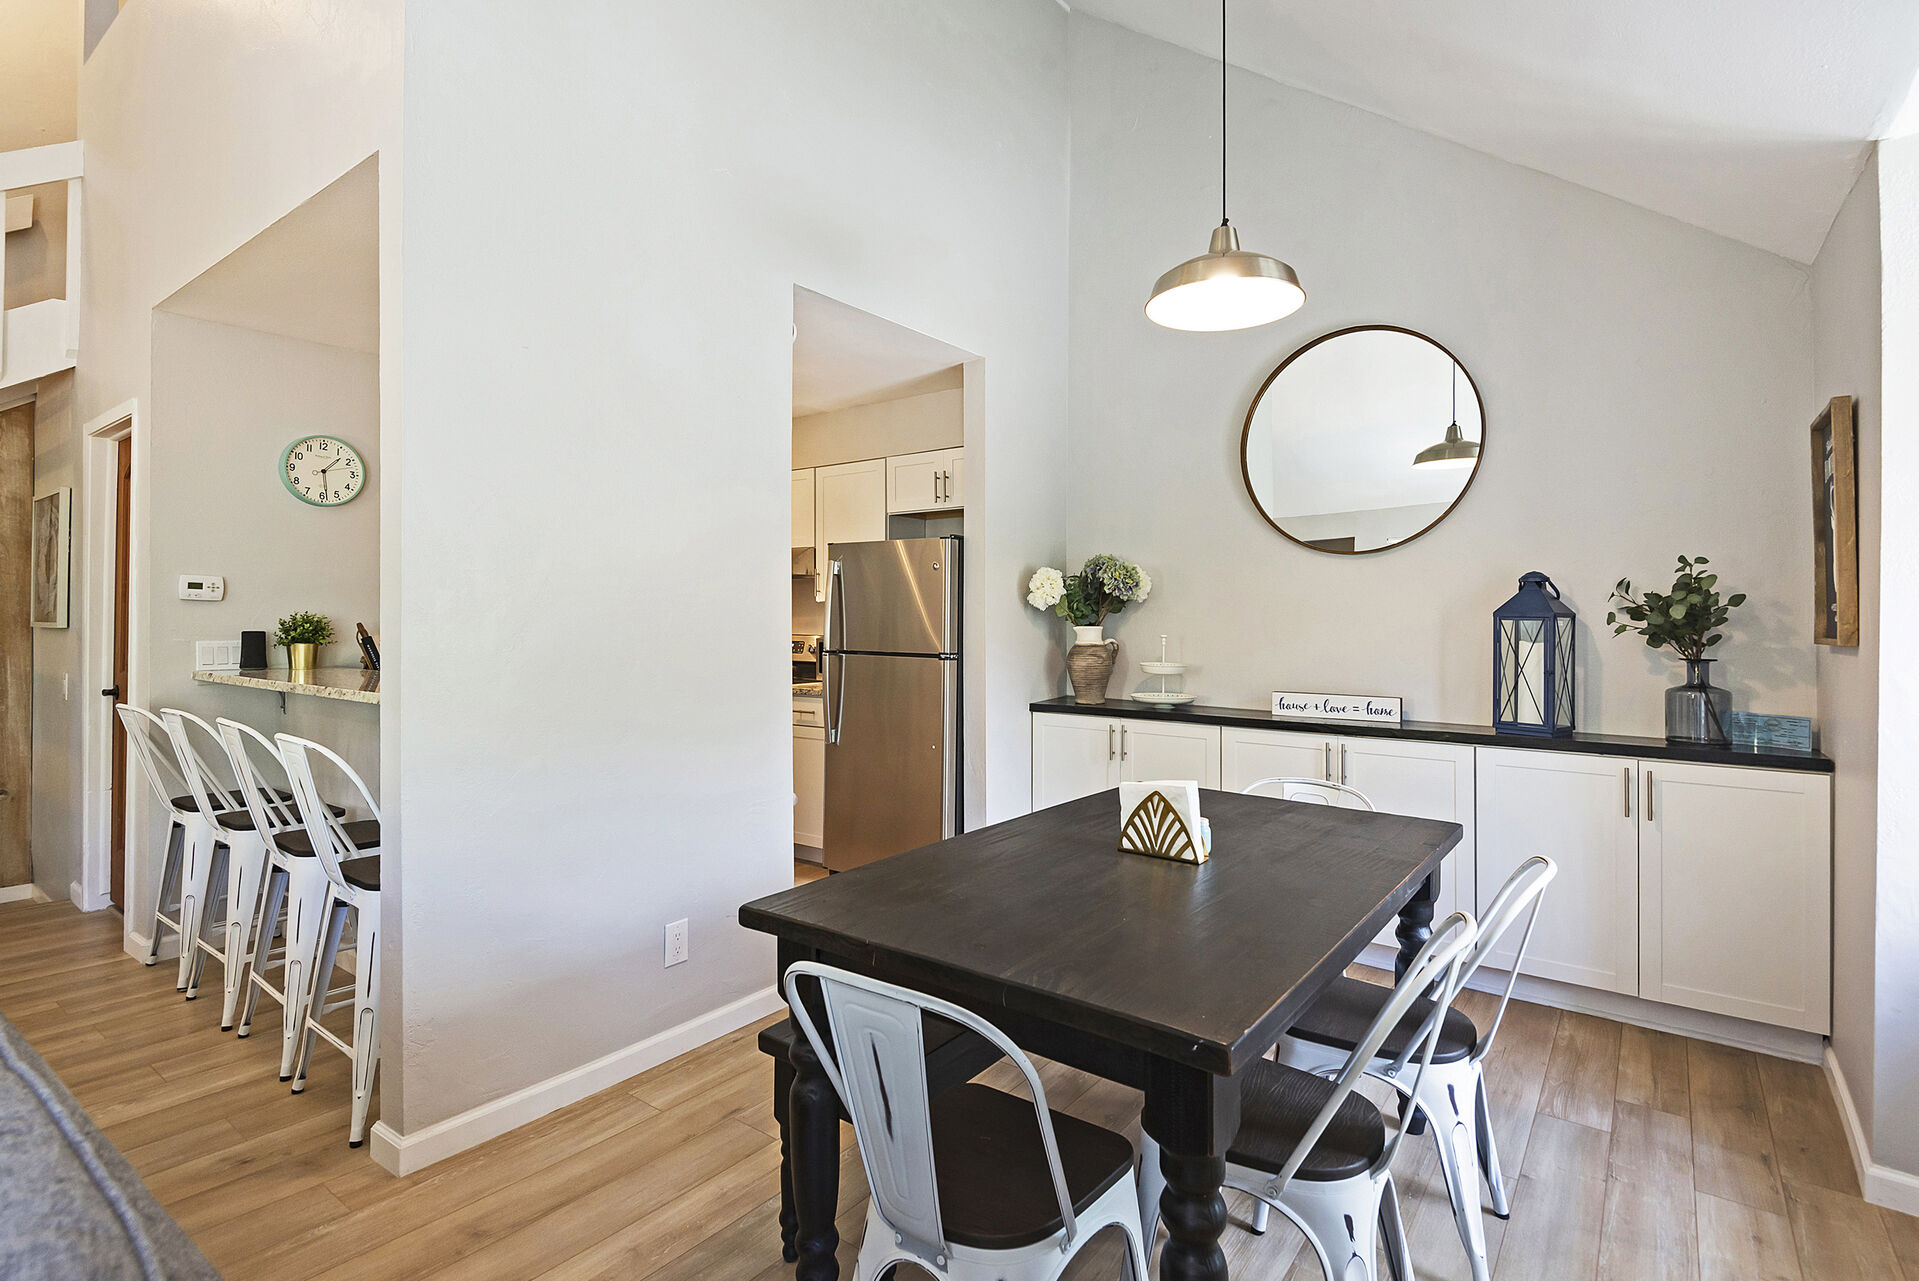 Dining Area with Seating for Seven and Kitchen Bar Seating for Four